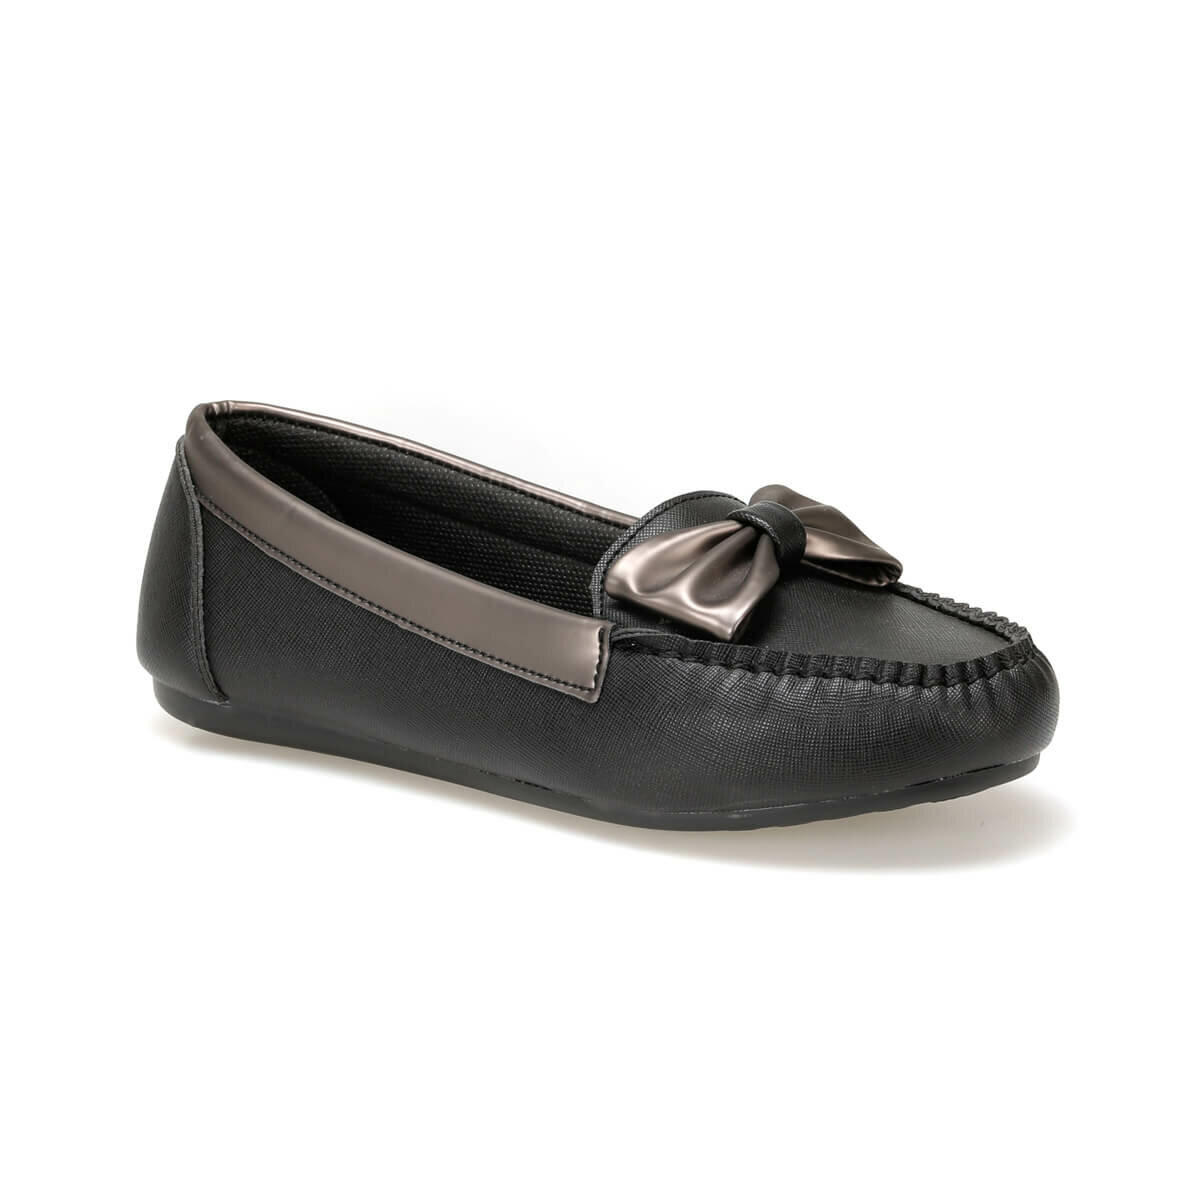 FLO DW17058-19K Black Women Loafer Shoes Miss F